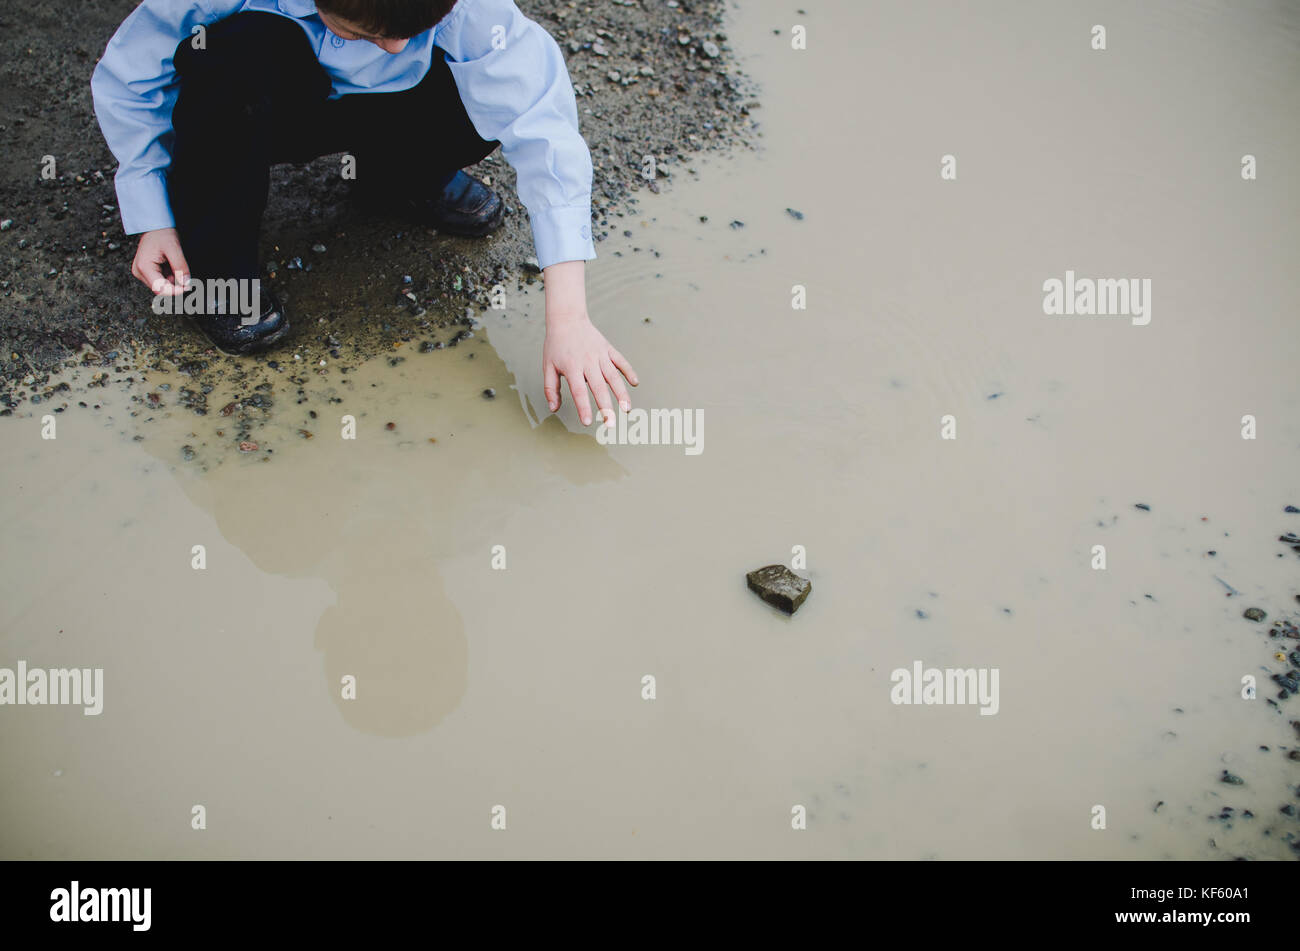 A boy reaching for a rock in a mud puddle. - Stock Image